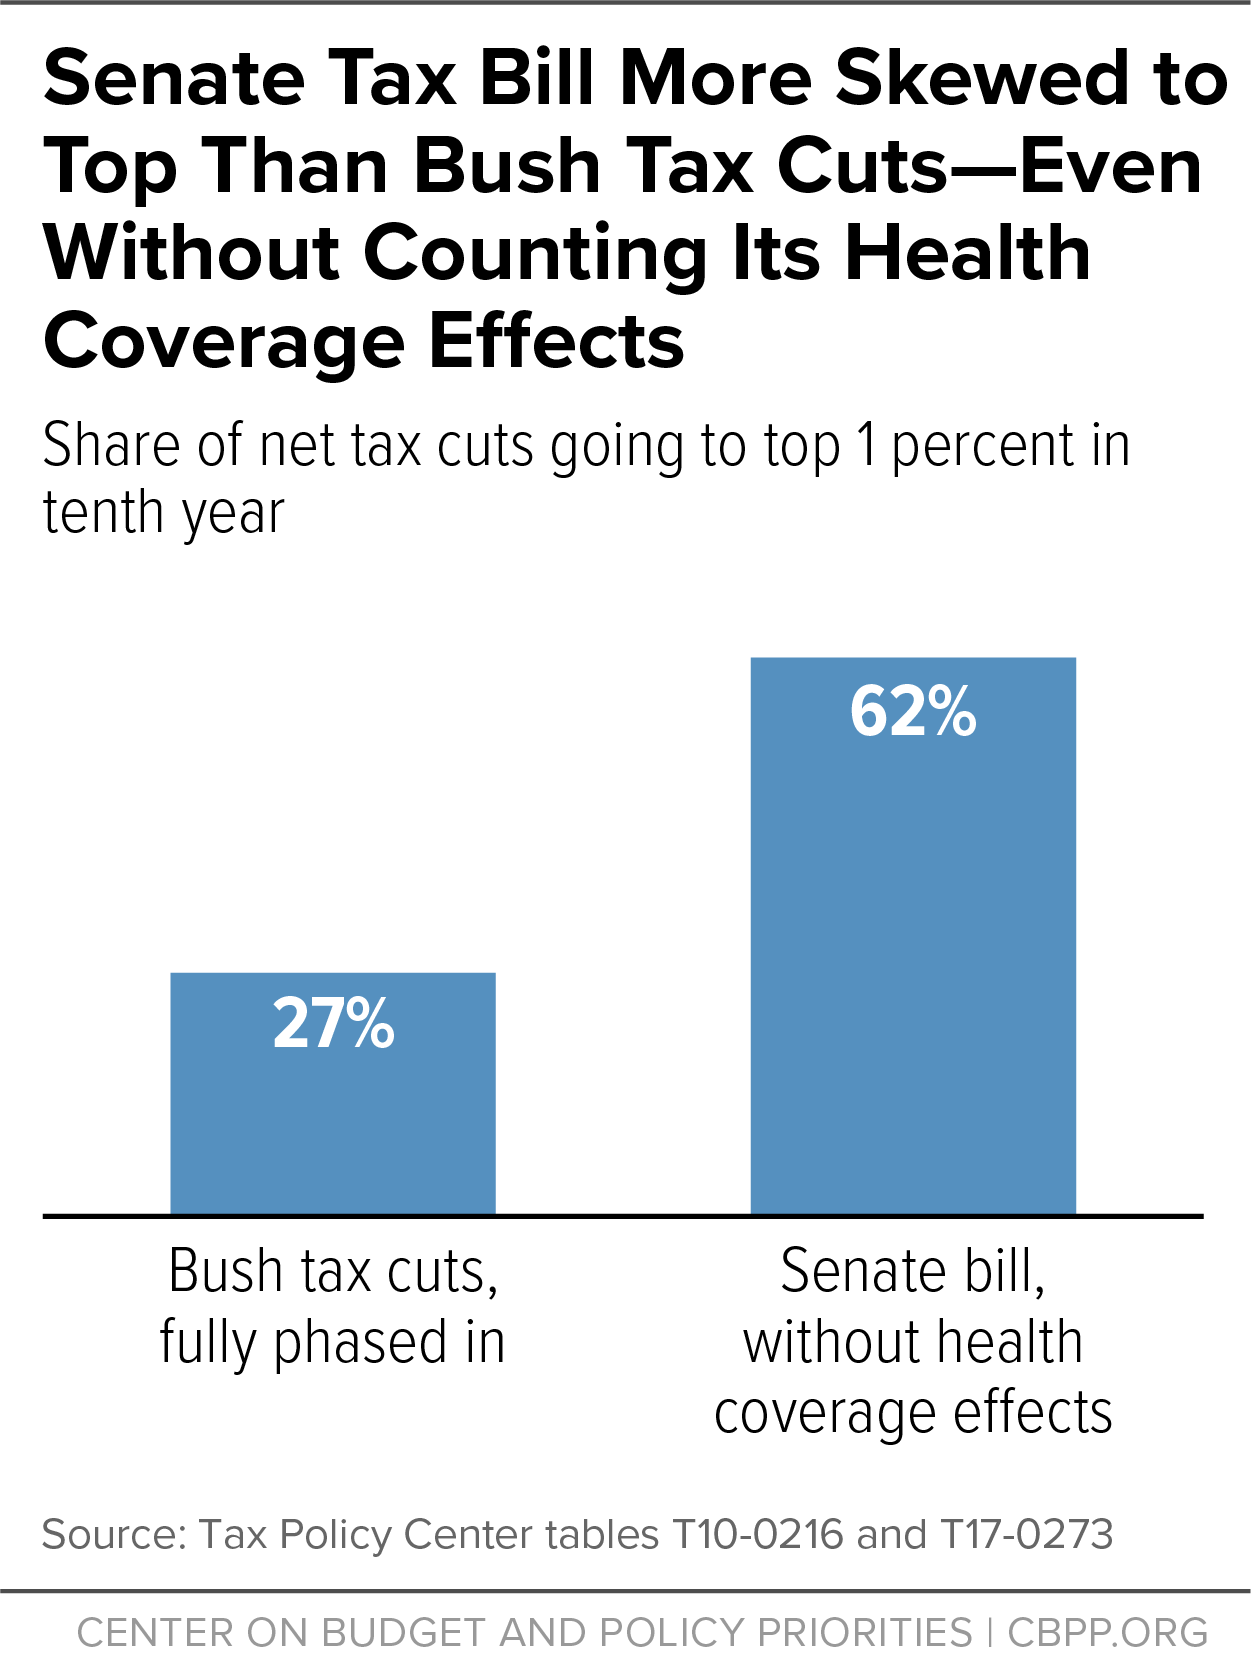 Senate Tax Bill More Skewed to Top Than Bush Tax Cuts -- Even Without Counting Its Health Coverage Effects